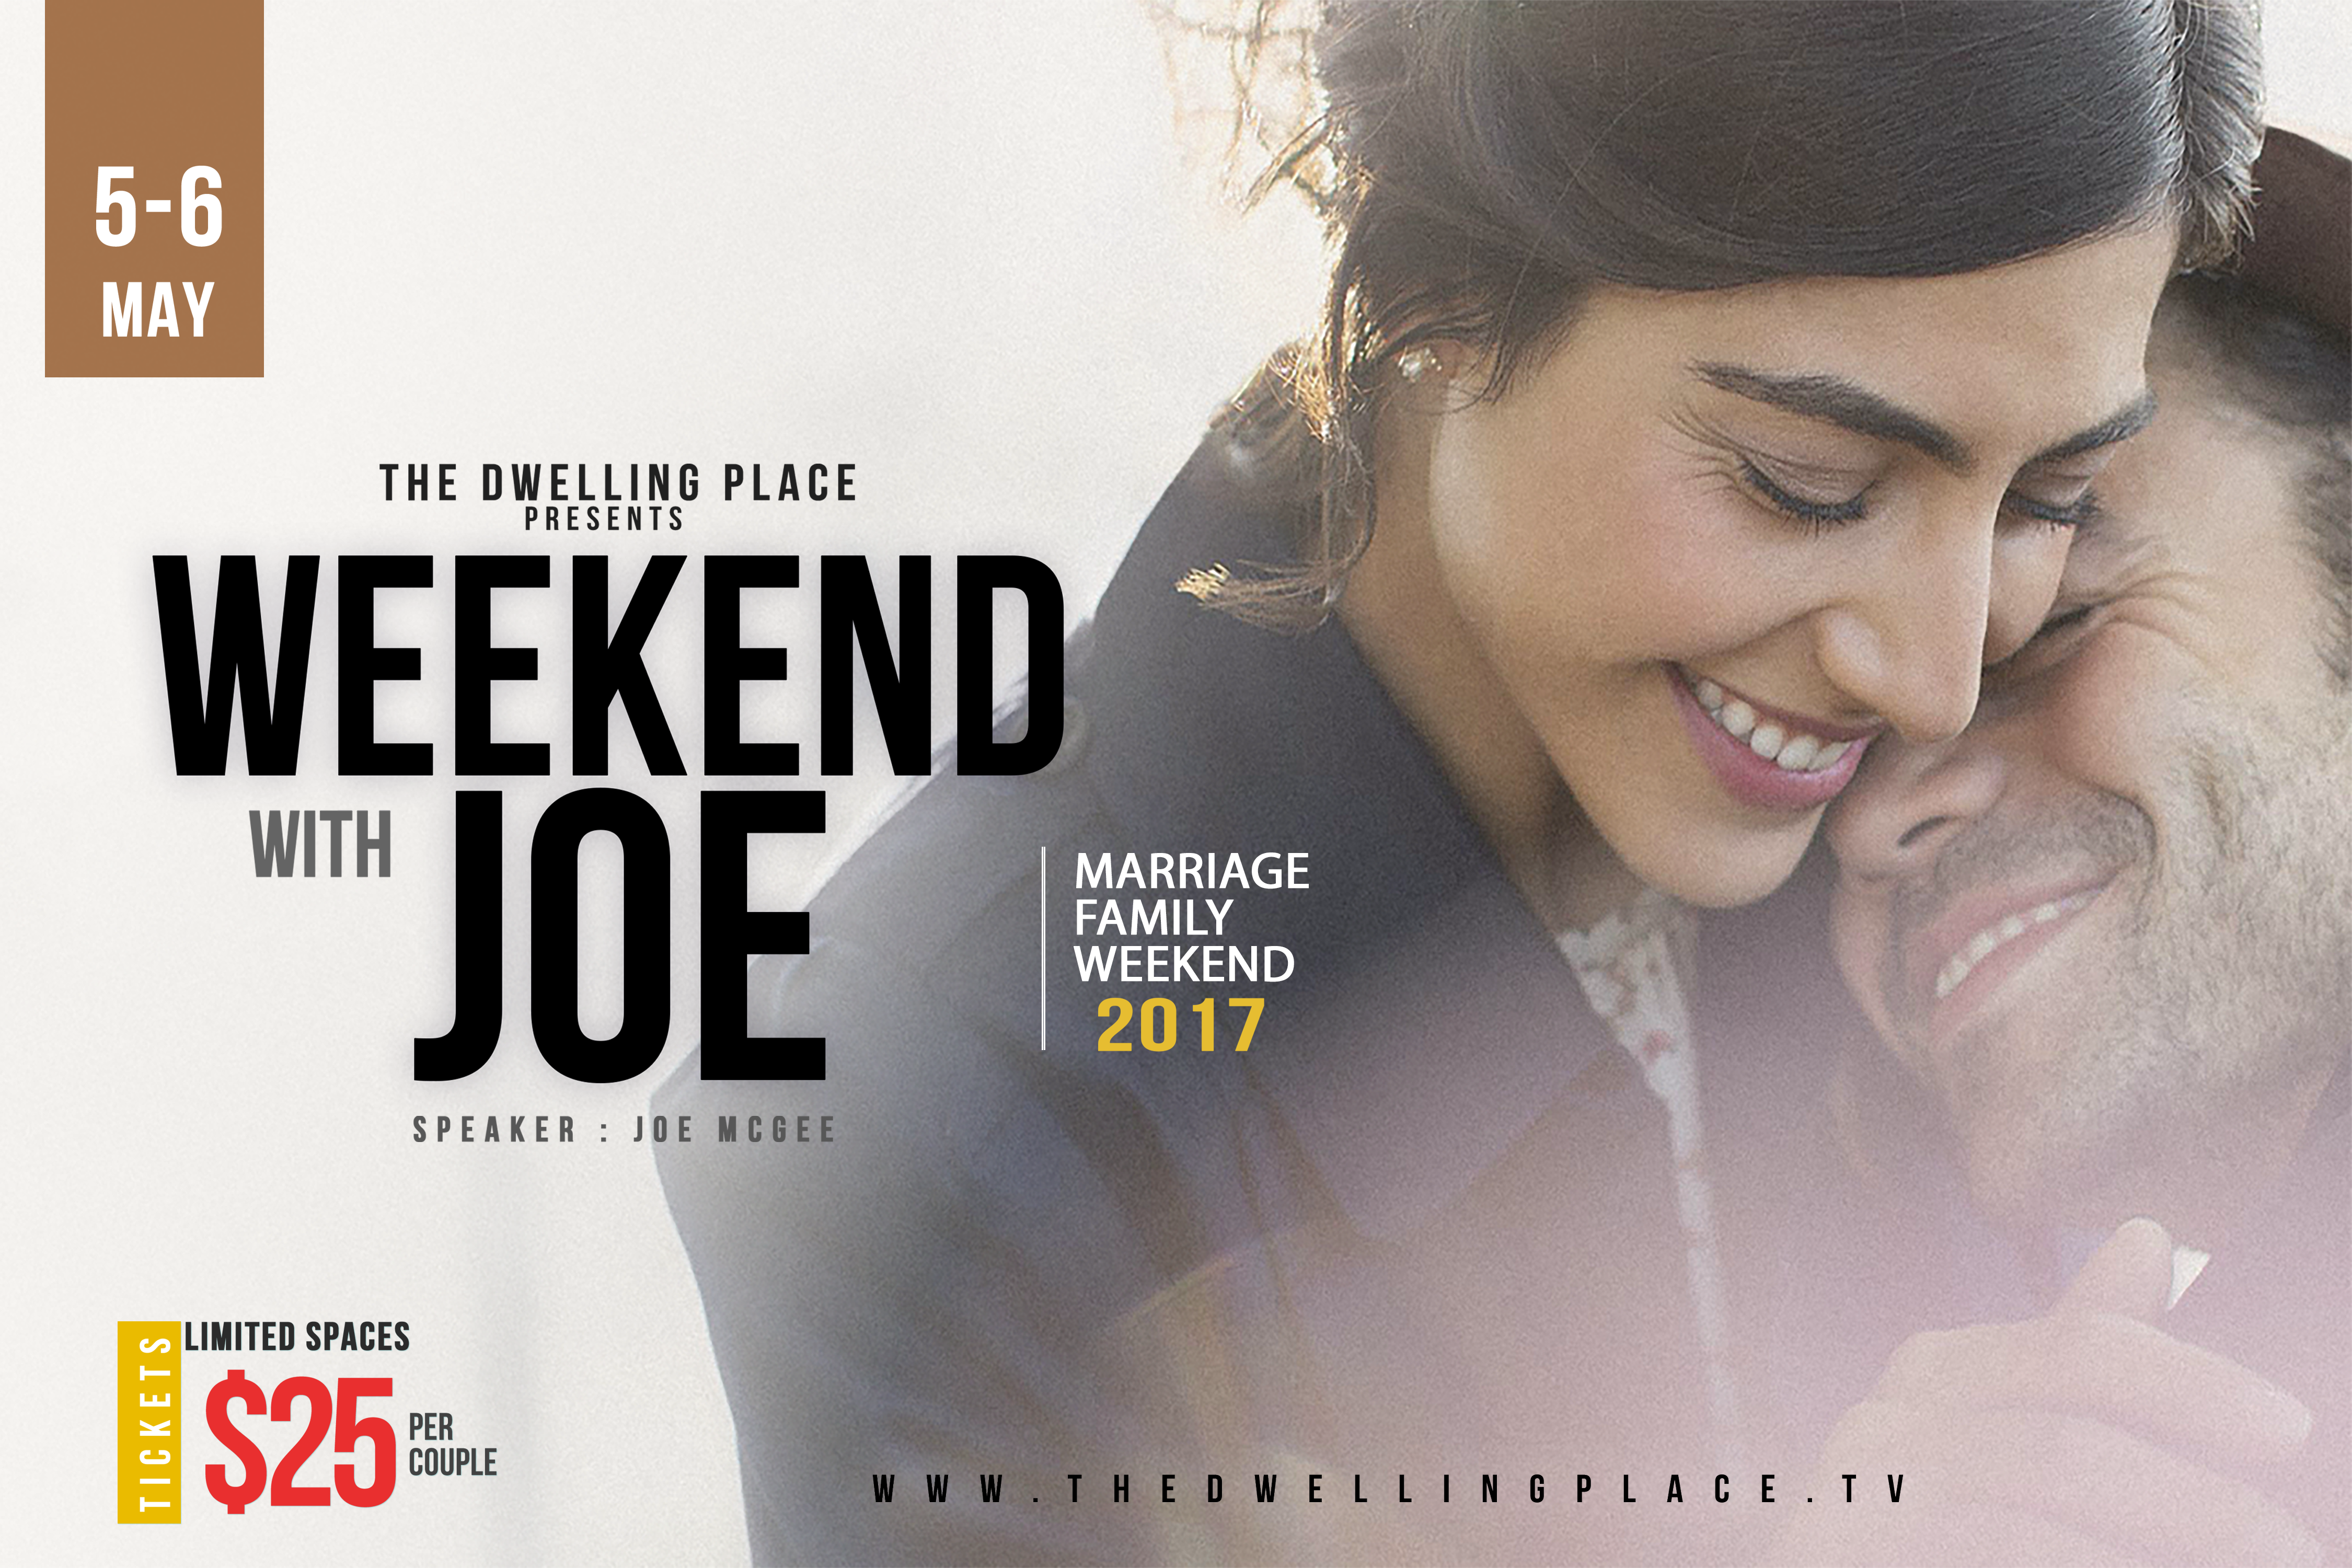 Weekend with joe poster size